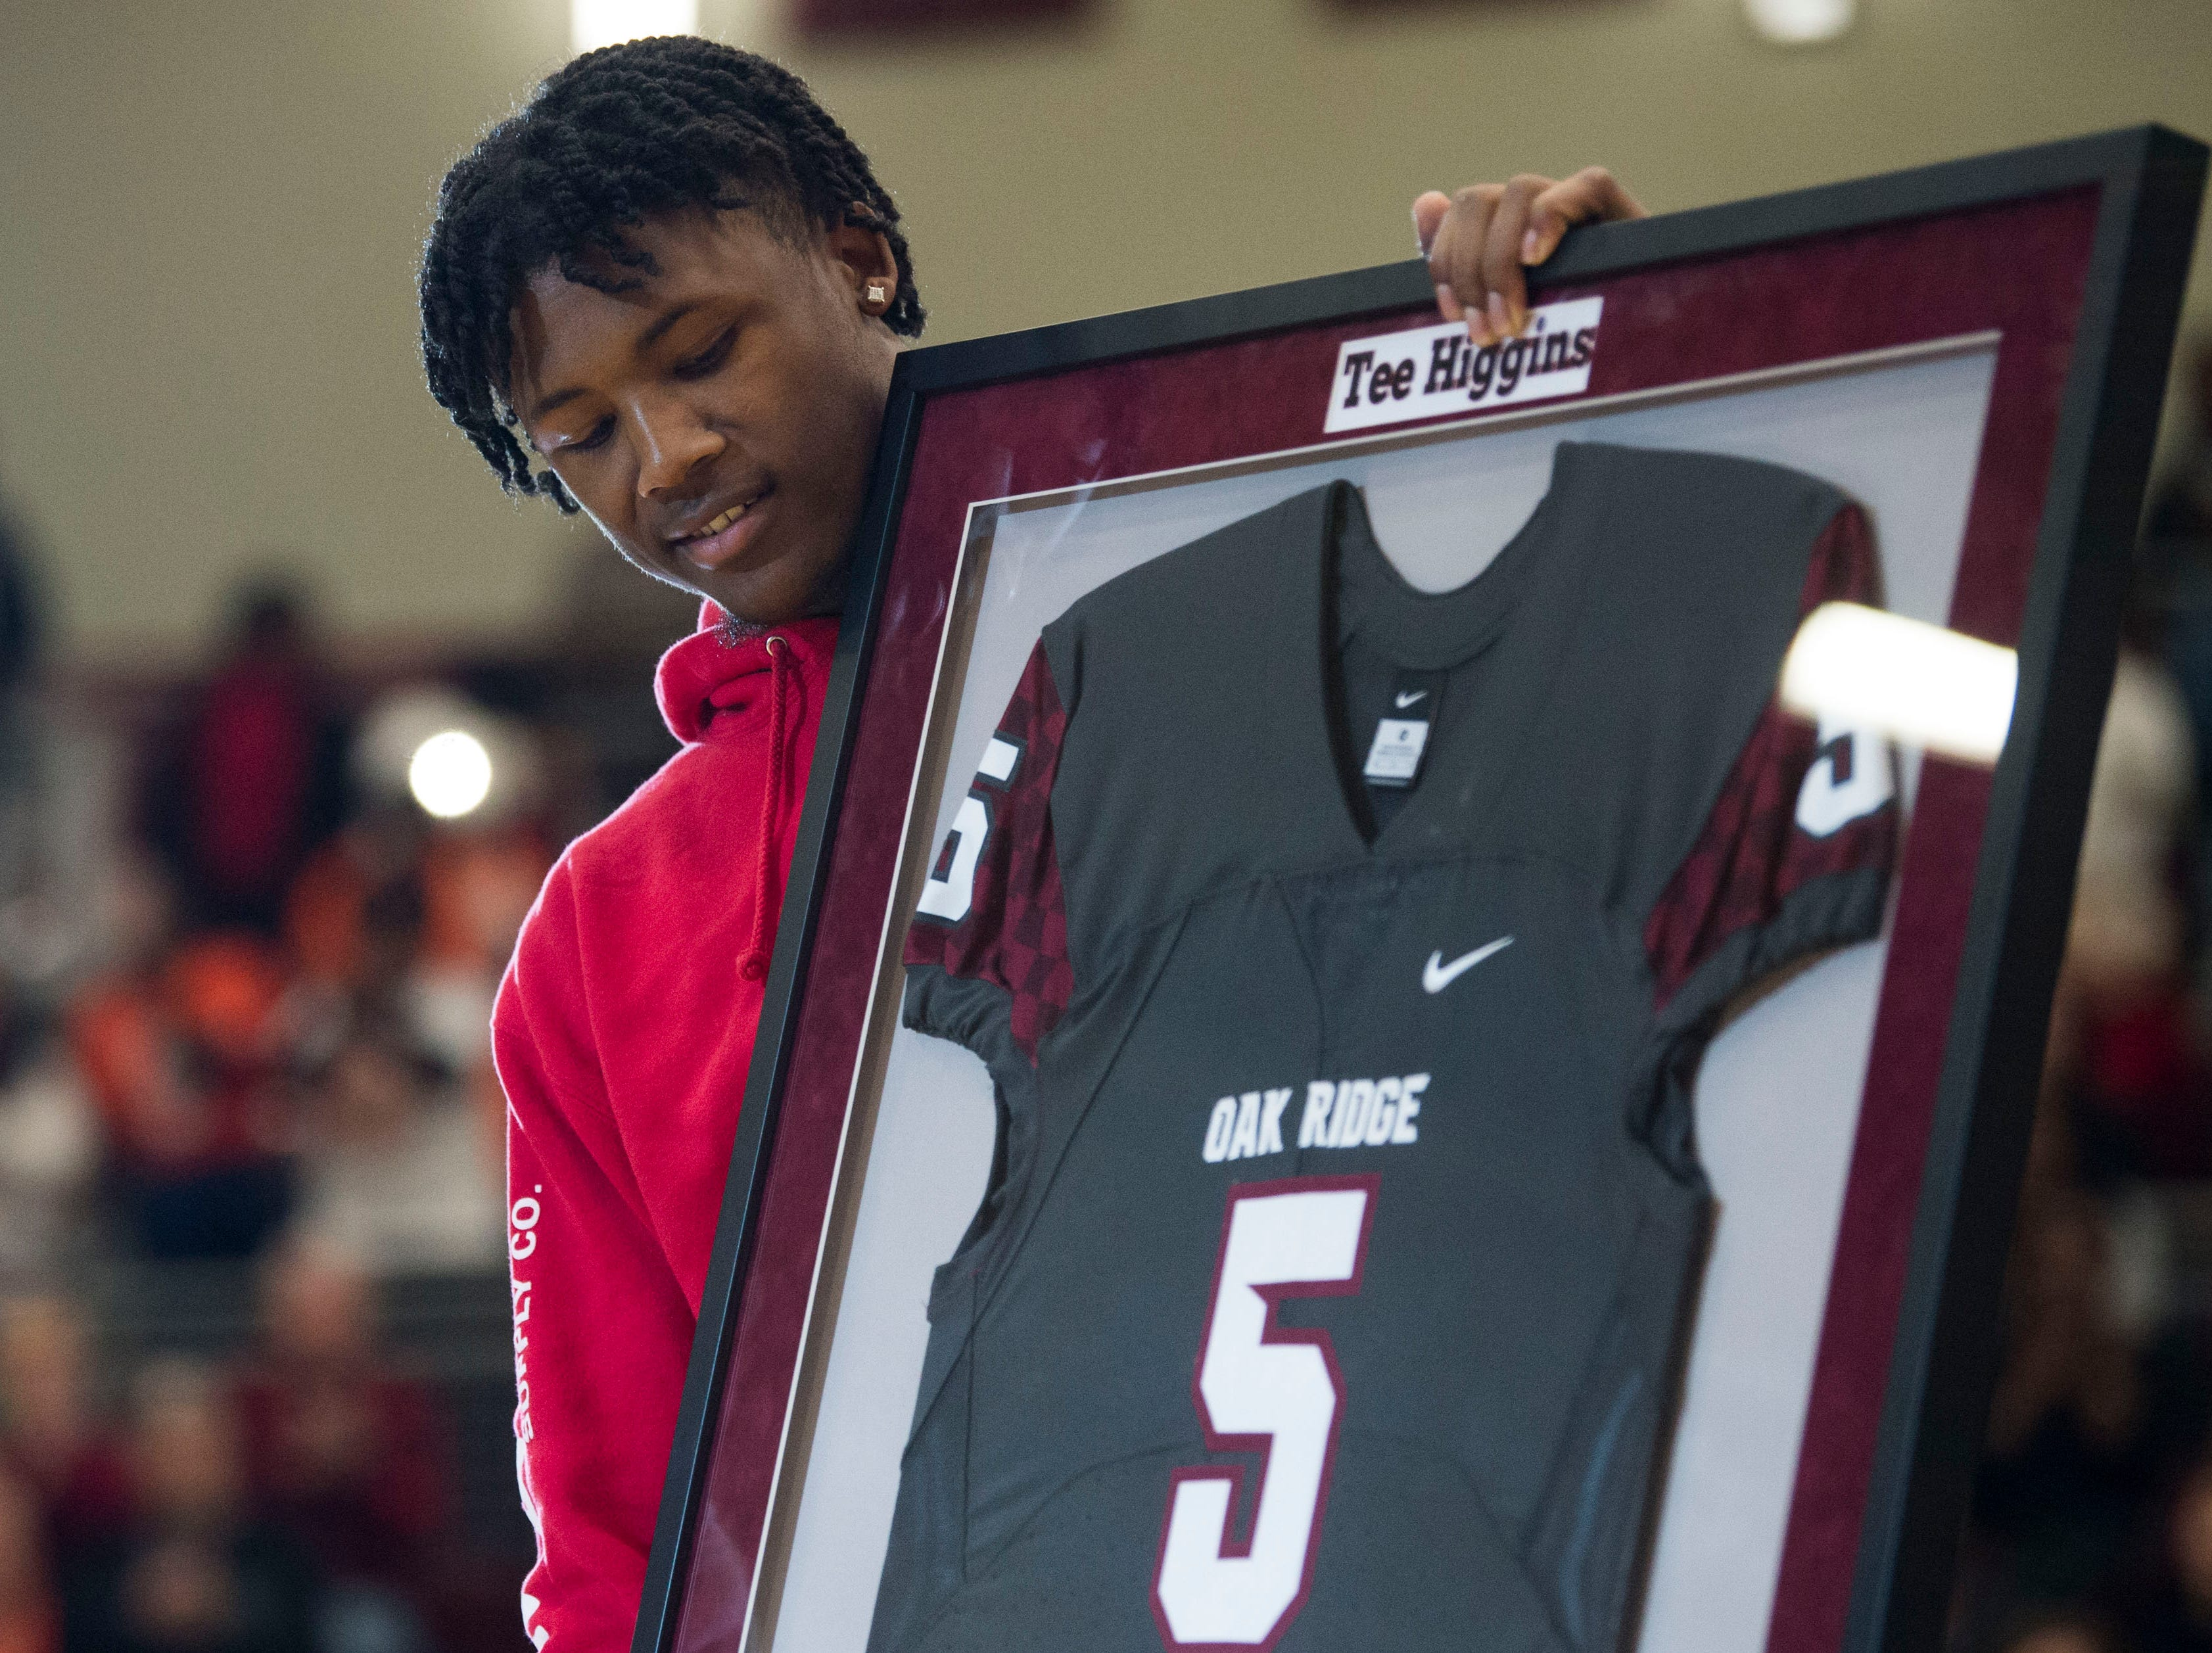 Former Oak Ridge High School athlete Tee Higgins, now a wide receiver at Clemson University, holds up his jersey as it is retired, during a high school basketball game between Oak Ridge and Campbell County at Oak Ridge Friday, Feb. 1, 2019.